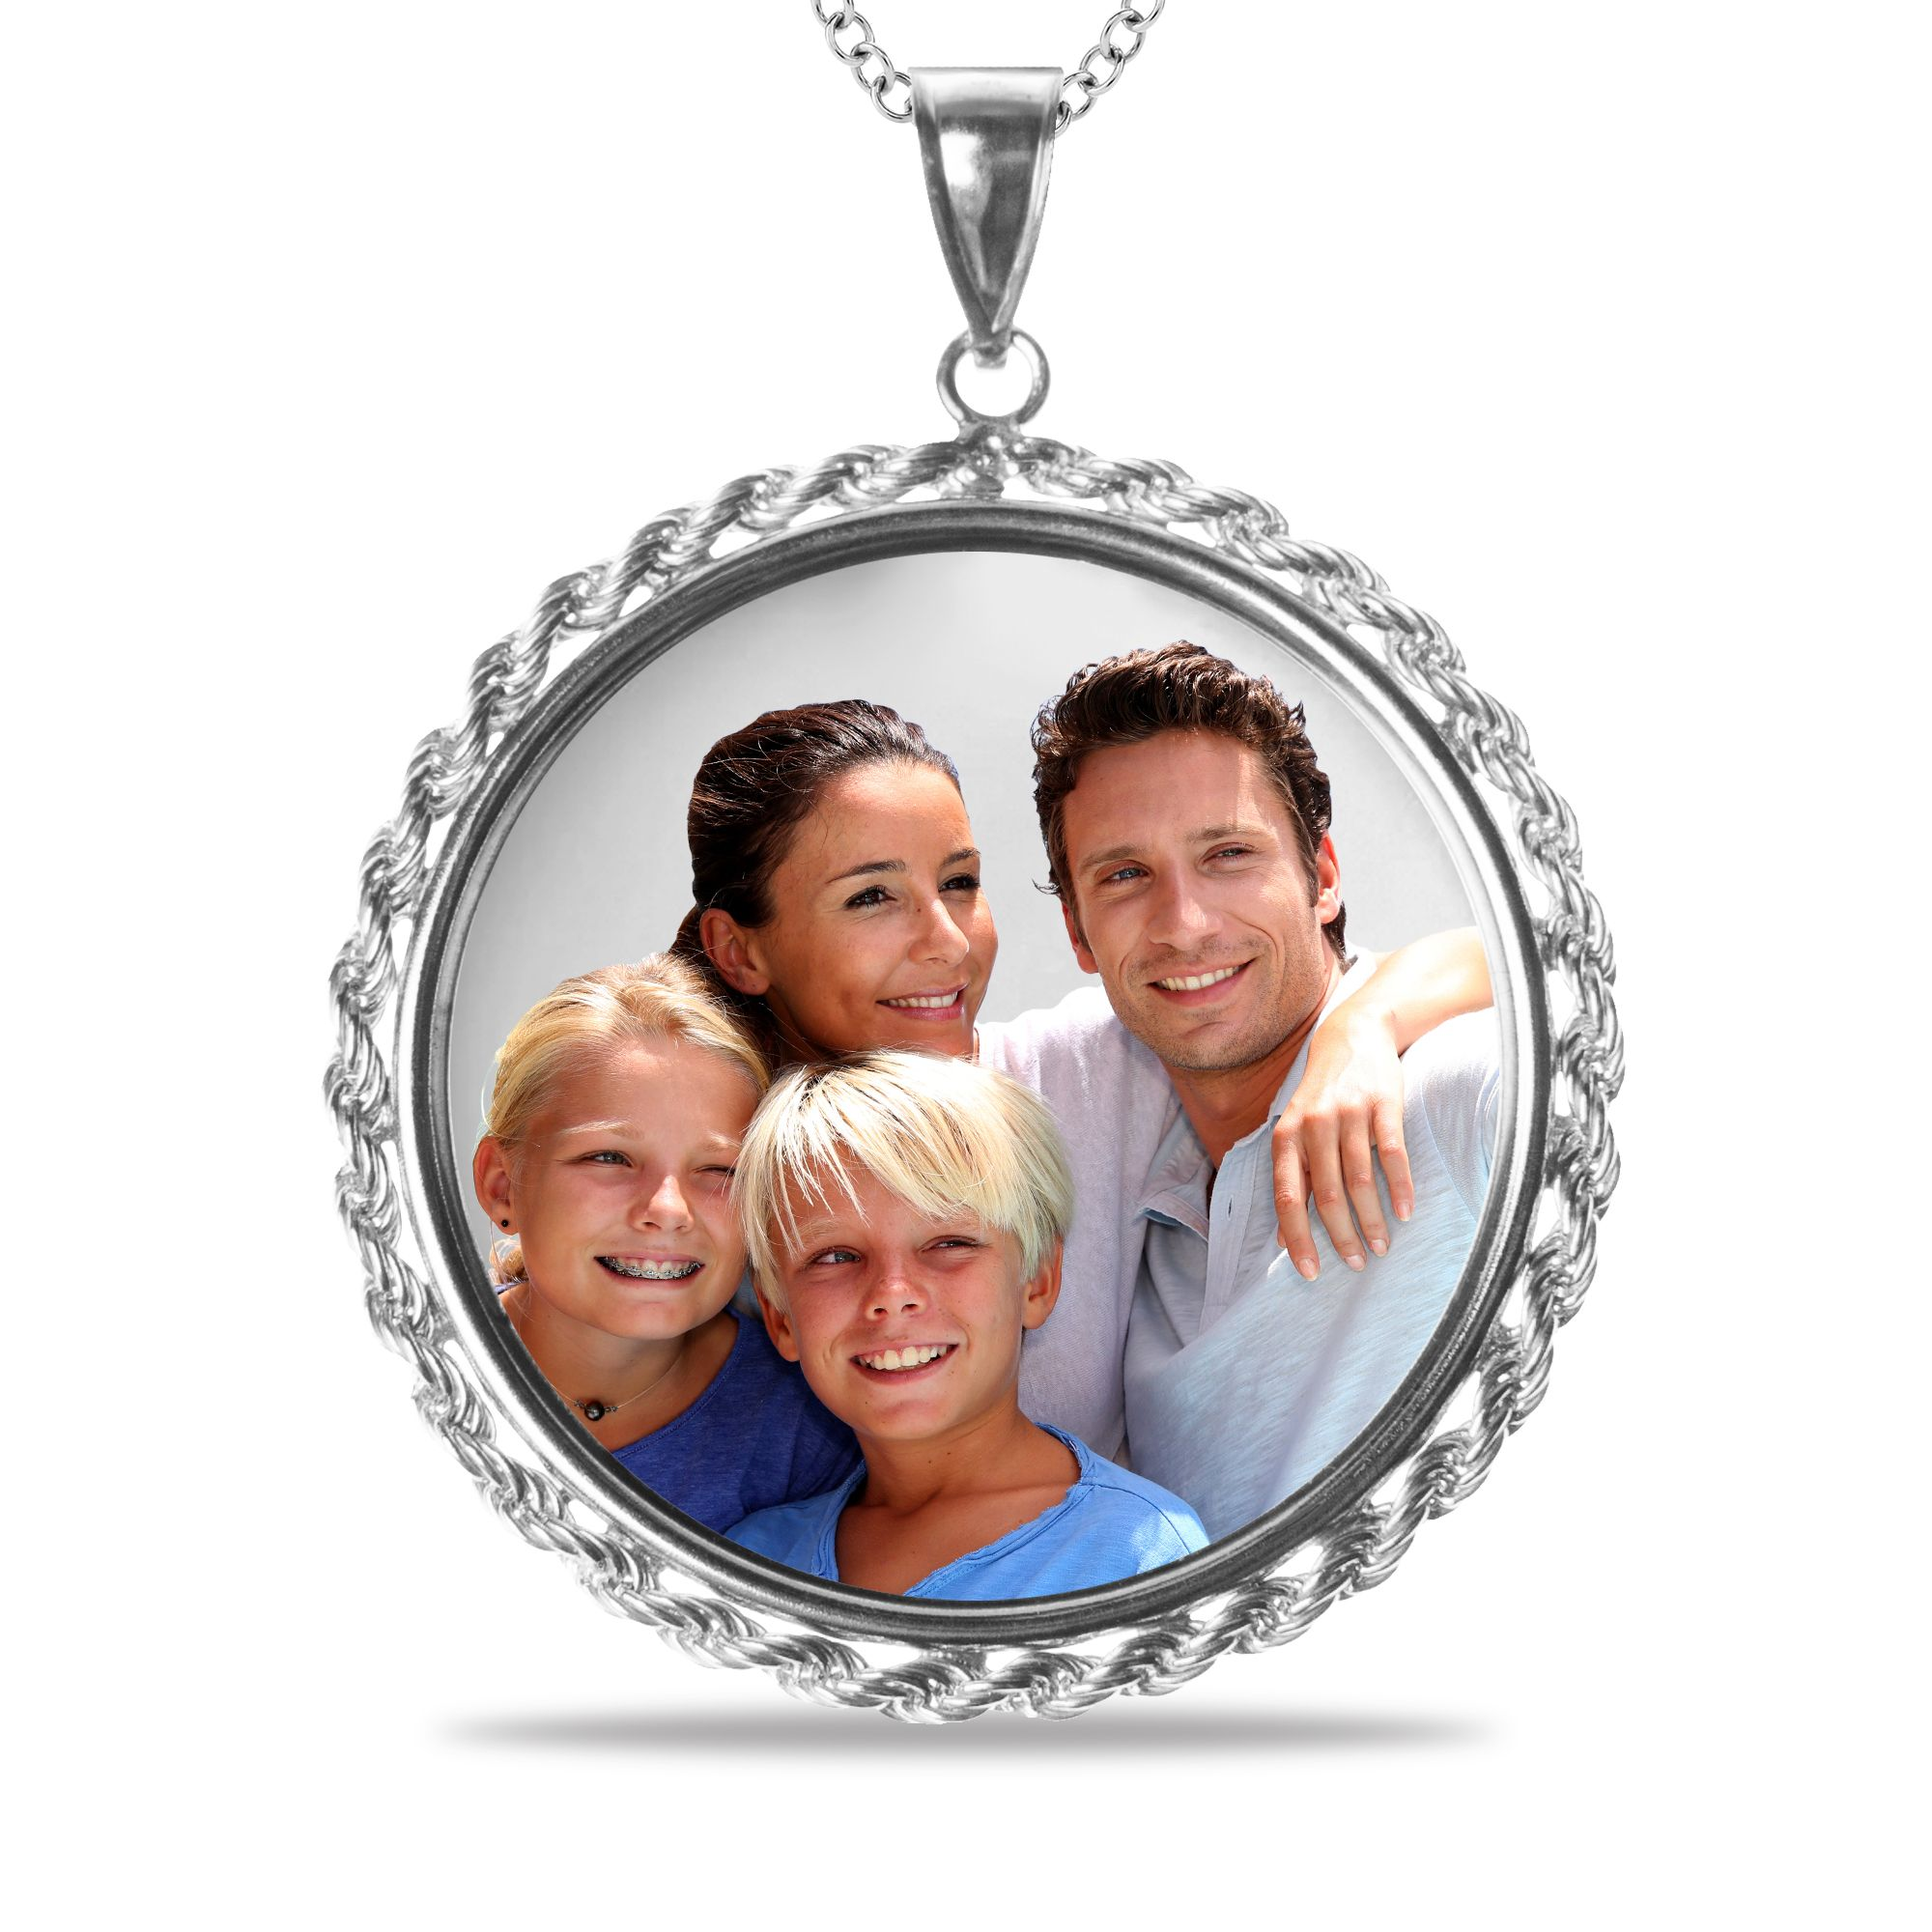 Custom Picture Pendants | Circle pendant, Picture pendant, Sentimental  gifts for mom